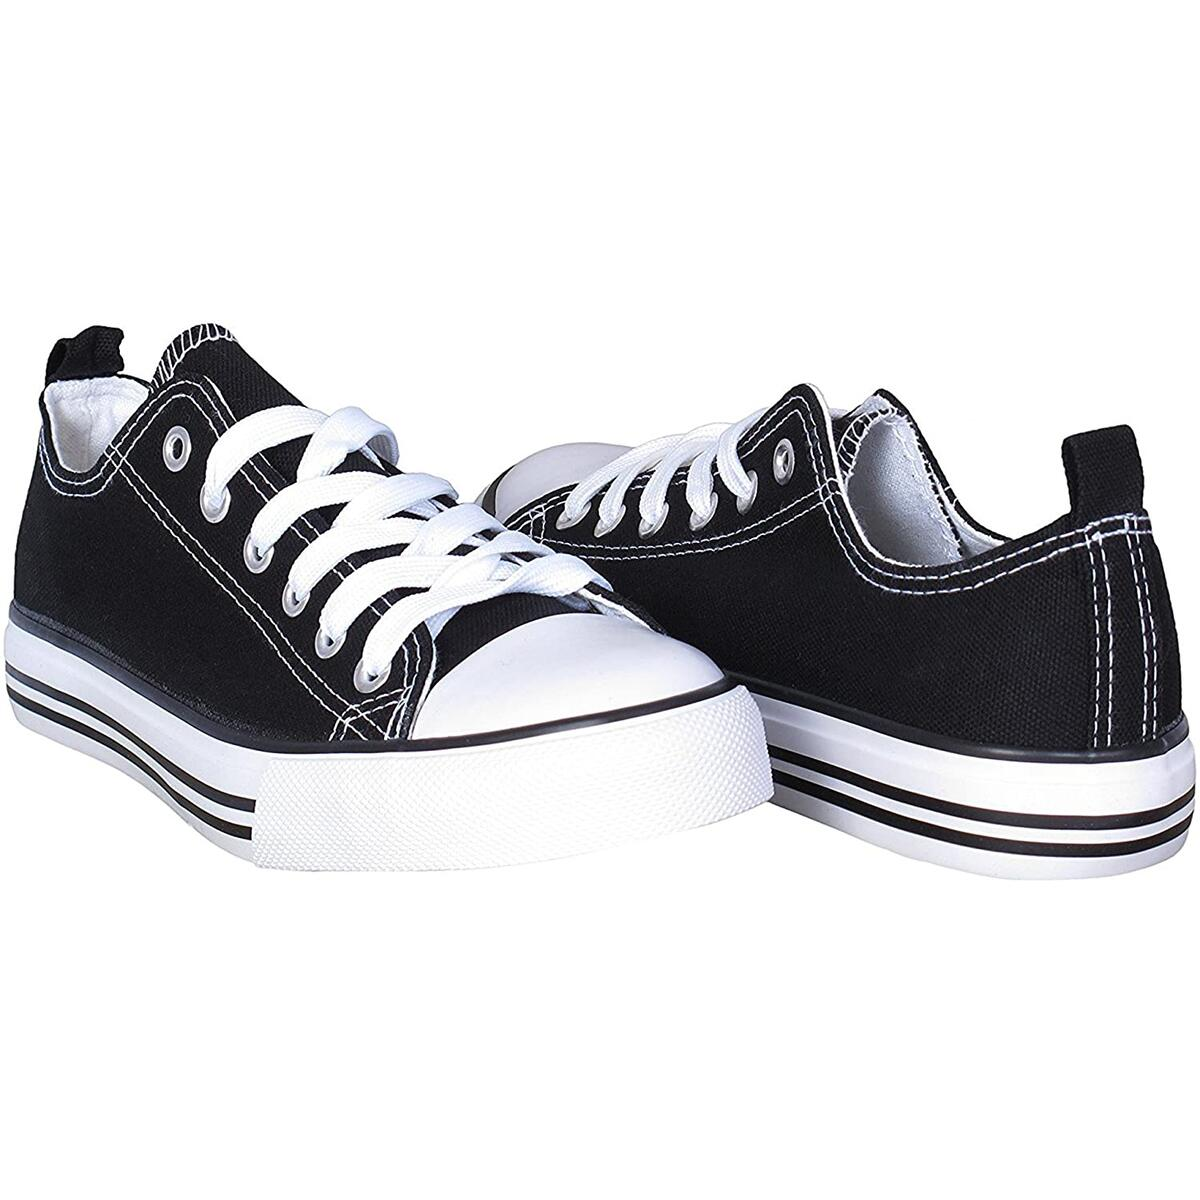 Rebate Only For Color: Black and White Size: 8 -  Women's Canvas Sneakers Casual Shoes Solid Colors Low Top Low Cut Lace up